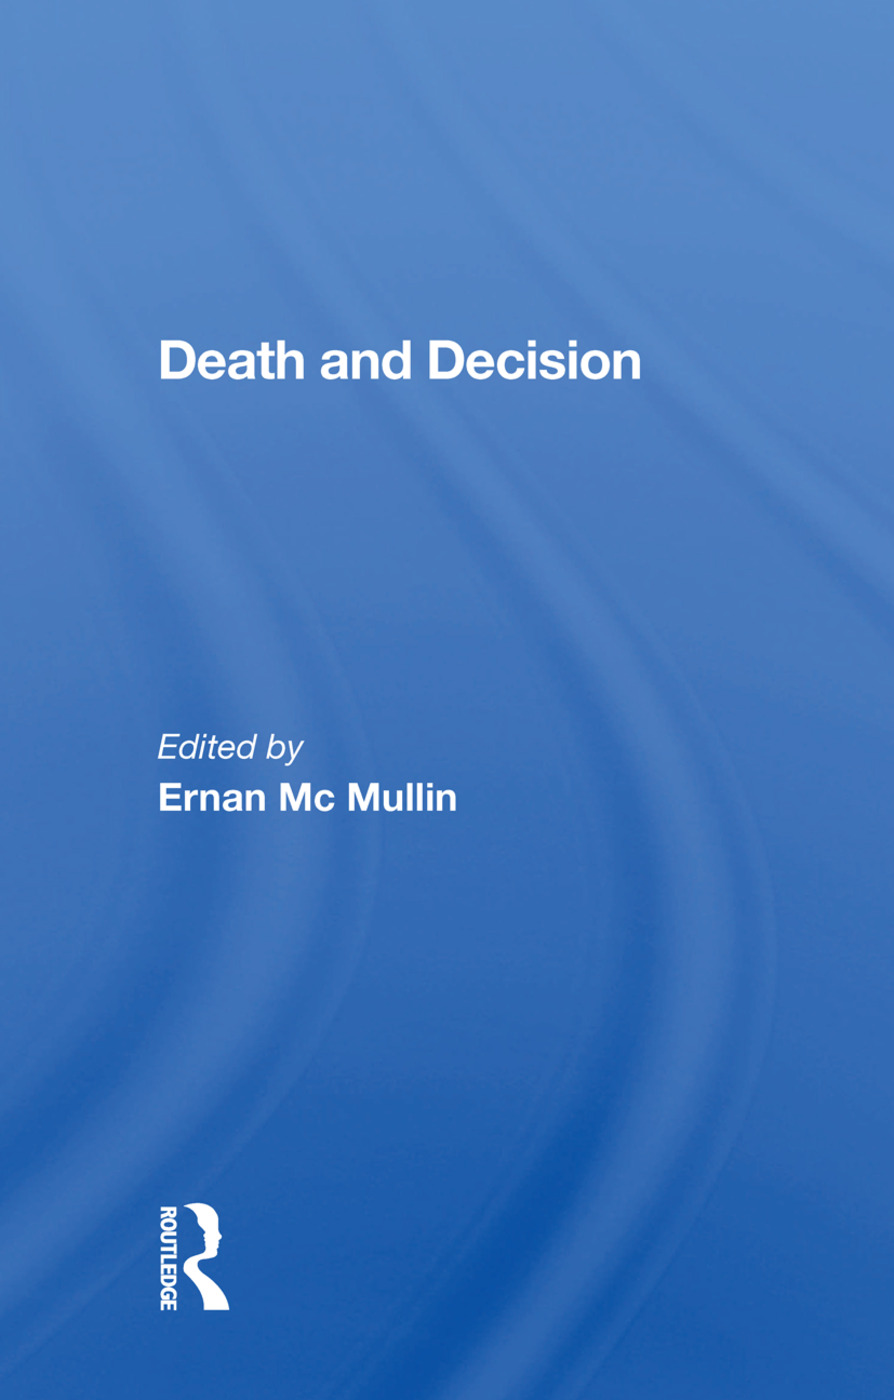 Death and Decision